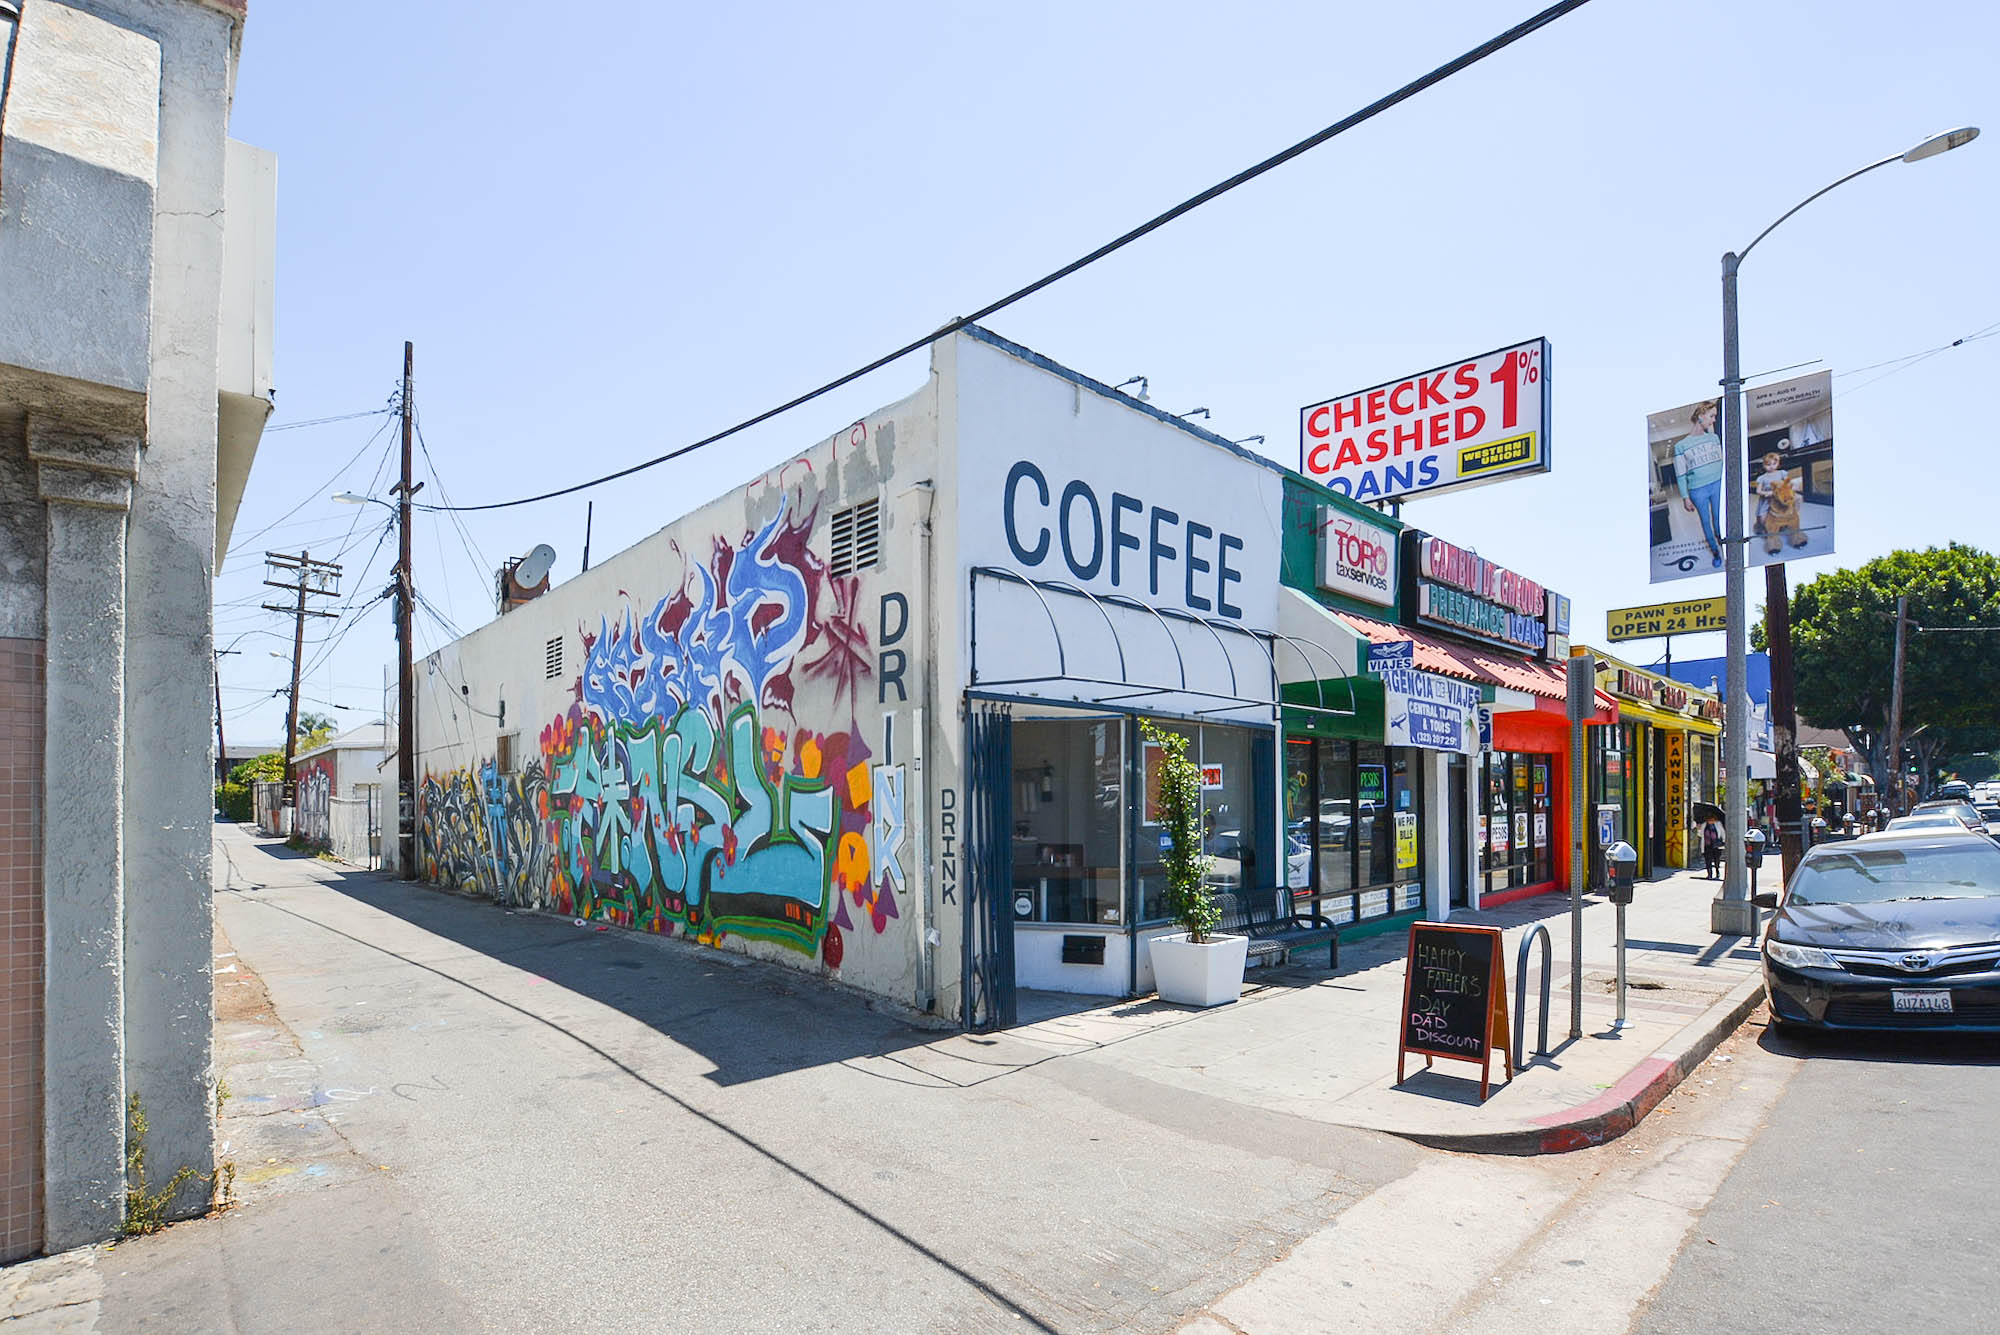 This New Boyle Heights Coffee Bar Has Become a Gentrification Battleground